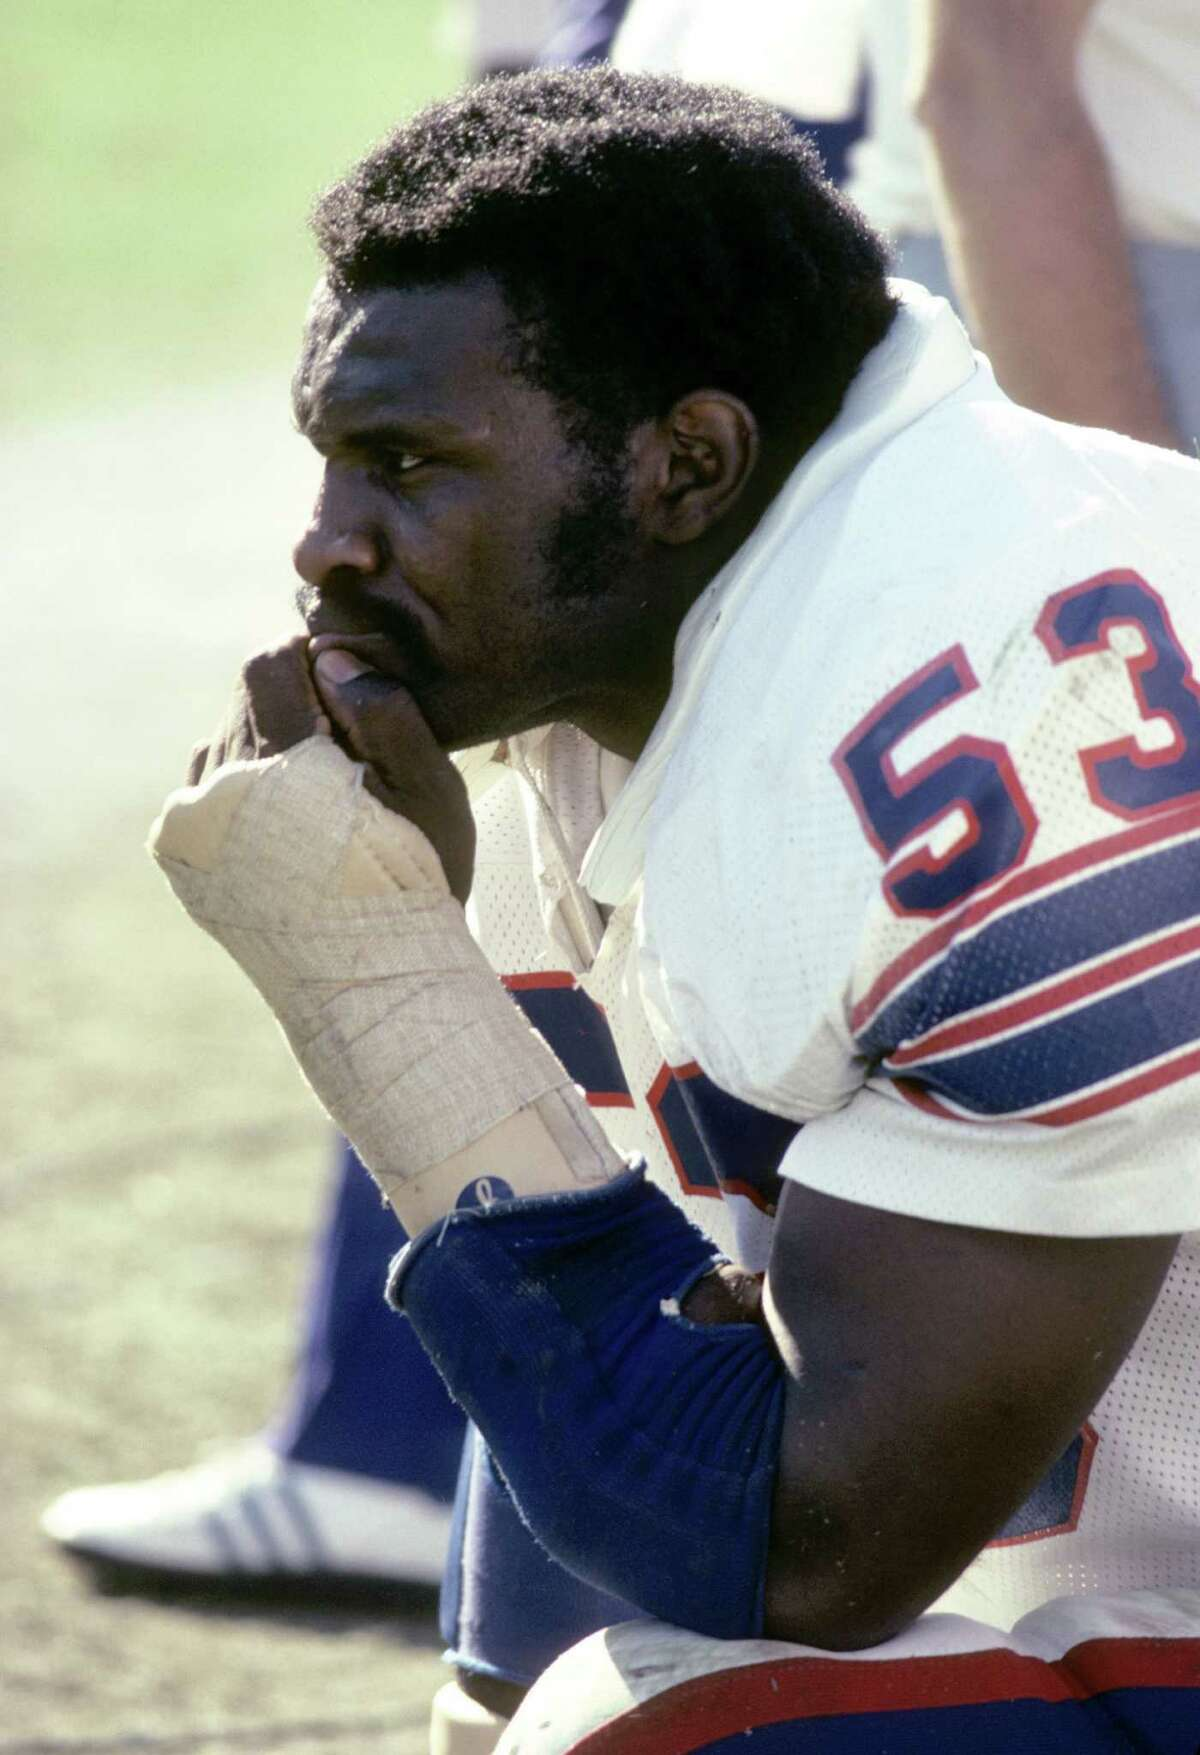 New York Giants linbebacker Harry Carson (53), elected to the NFL Hall of Fame Class of 2006, during a game in October, 1979. (Photo by Jim Campbell/Getty Images)